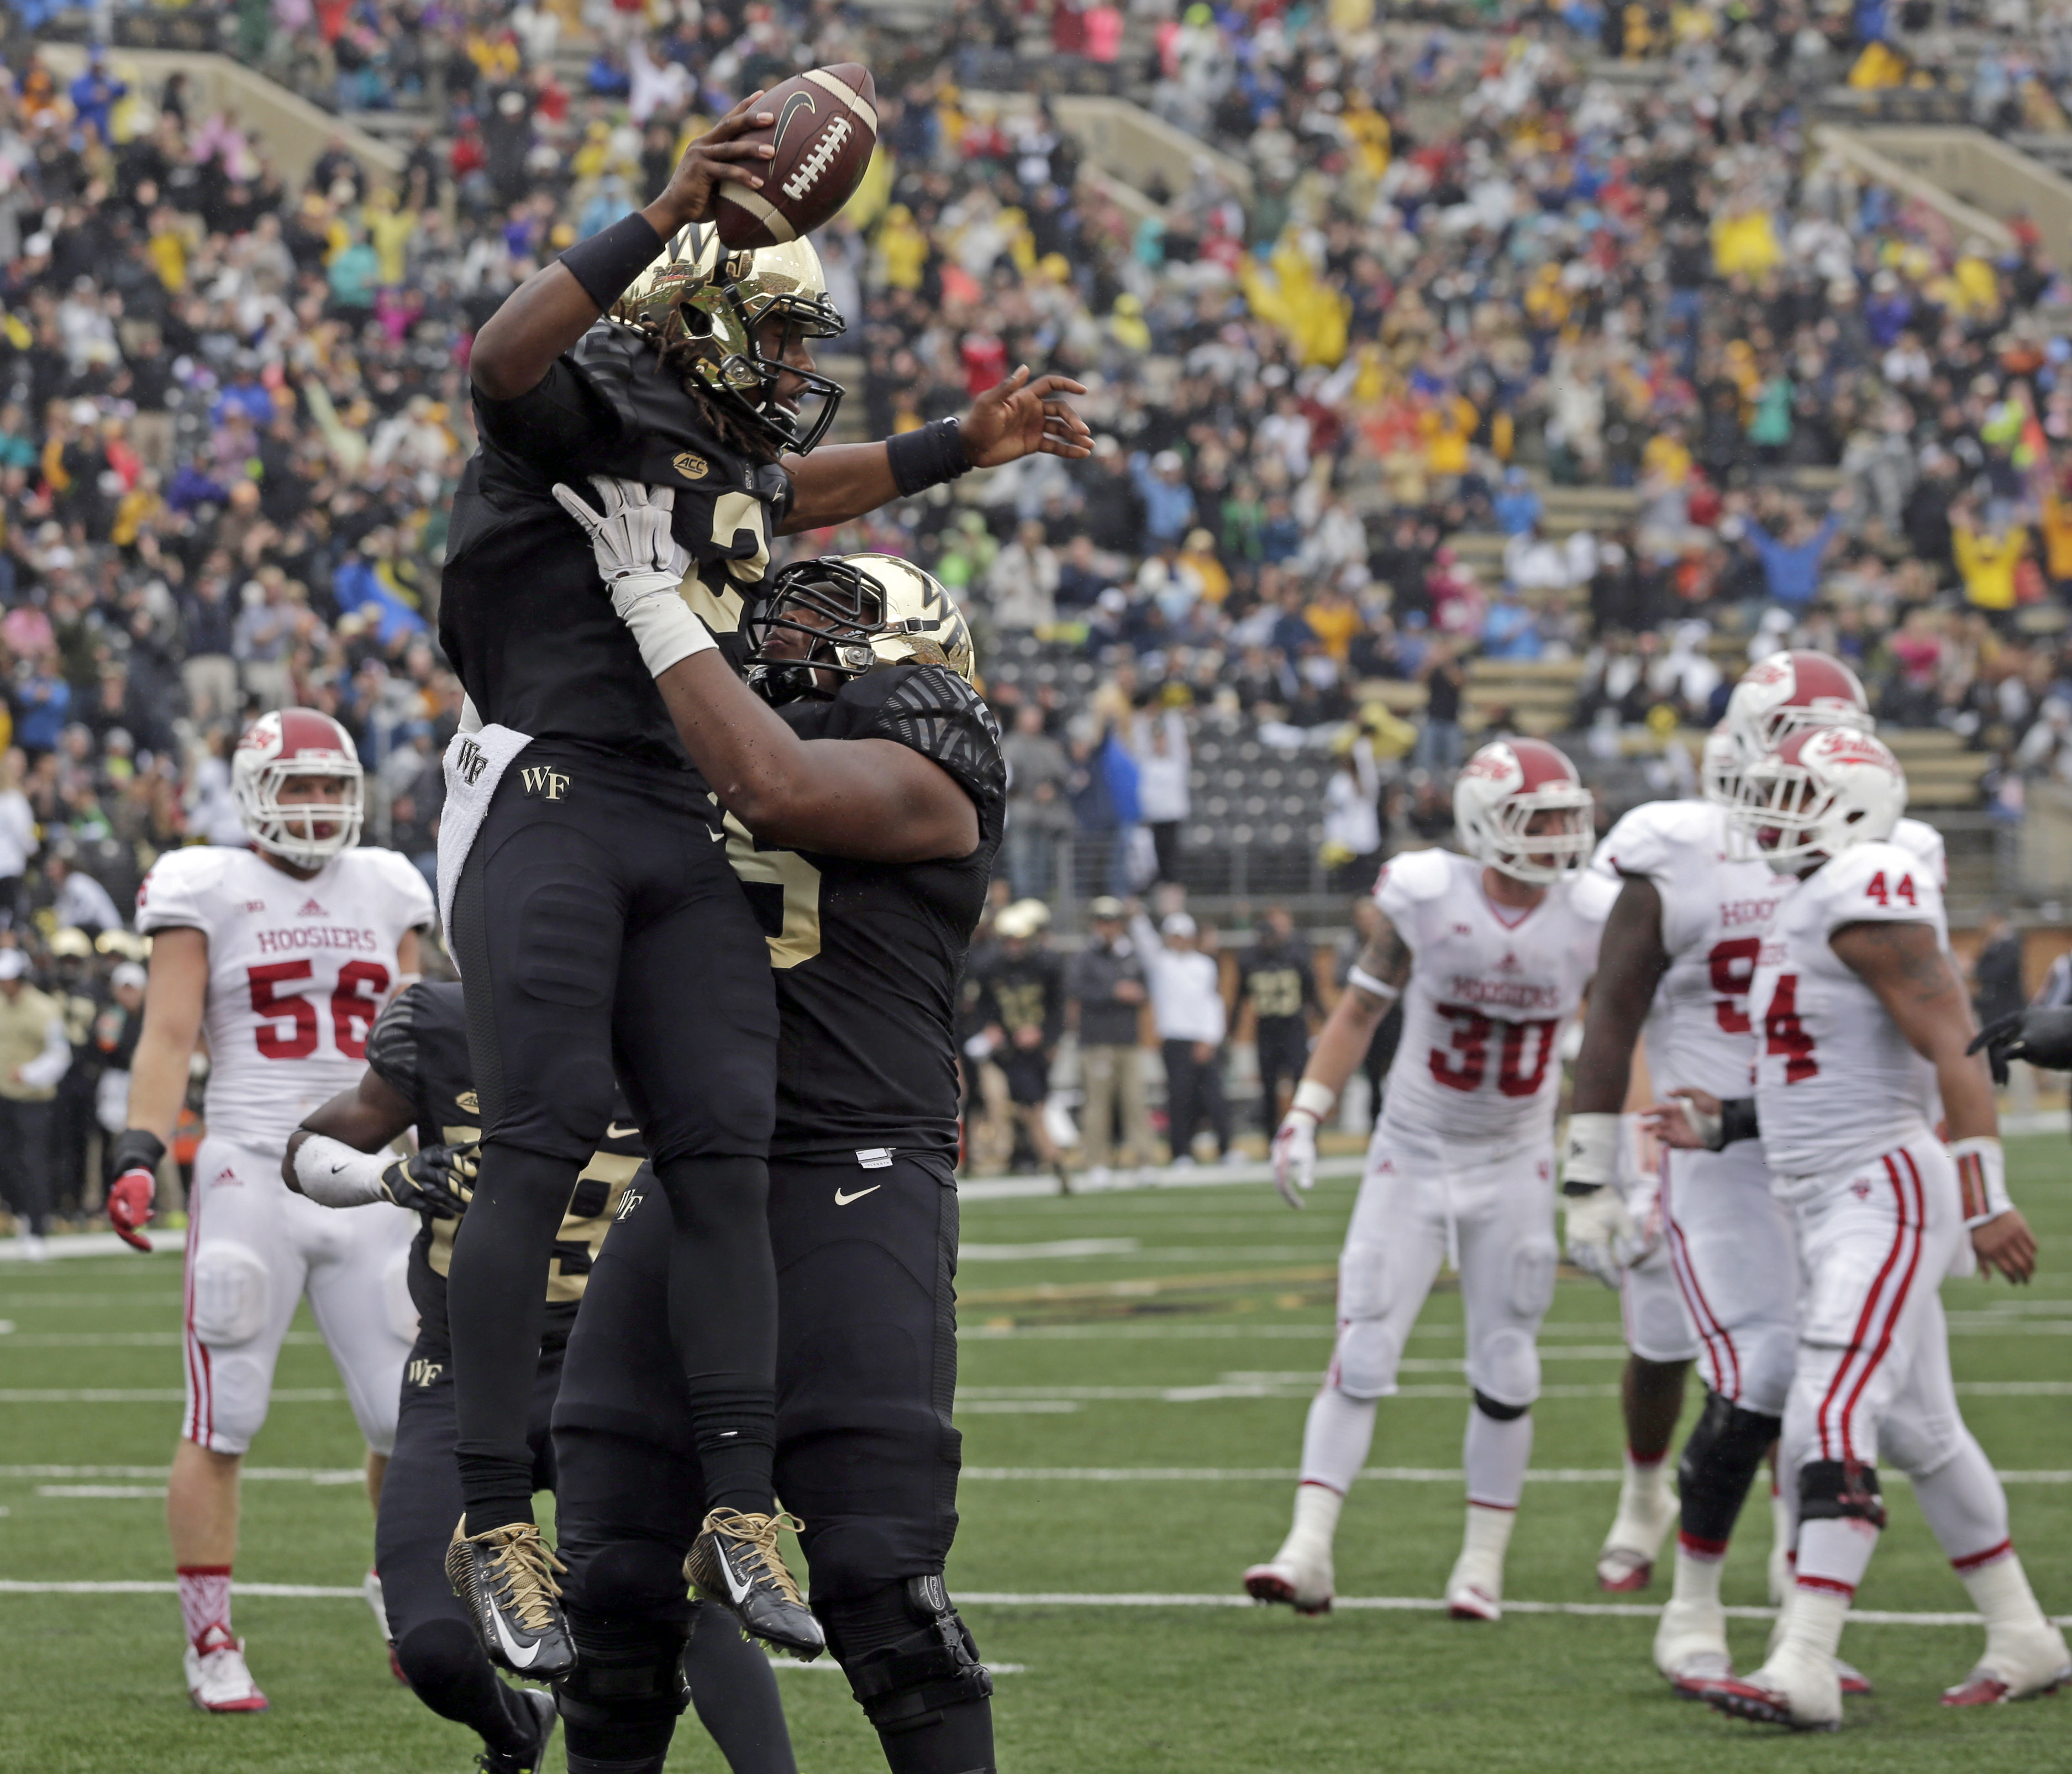 Wake Forest's Kendall Hinton (2) celebrates his touchdown against Indiana with a teammate during the first half of an NCAA college football game in Winston-Salem, N.C., Saturday, Sept. 26, 2015 . (AP Photo/Chuck Burton)